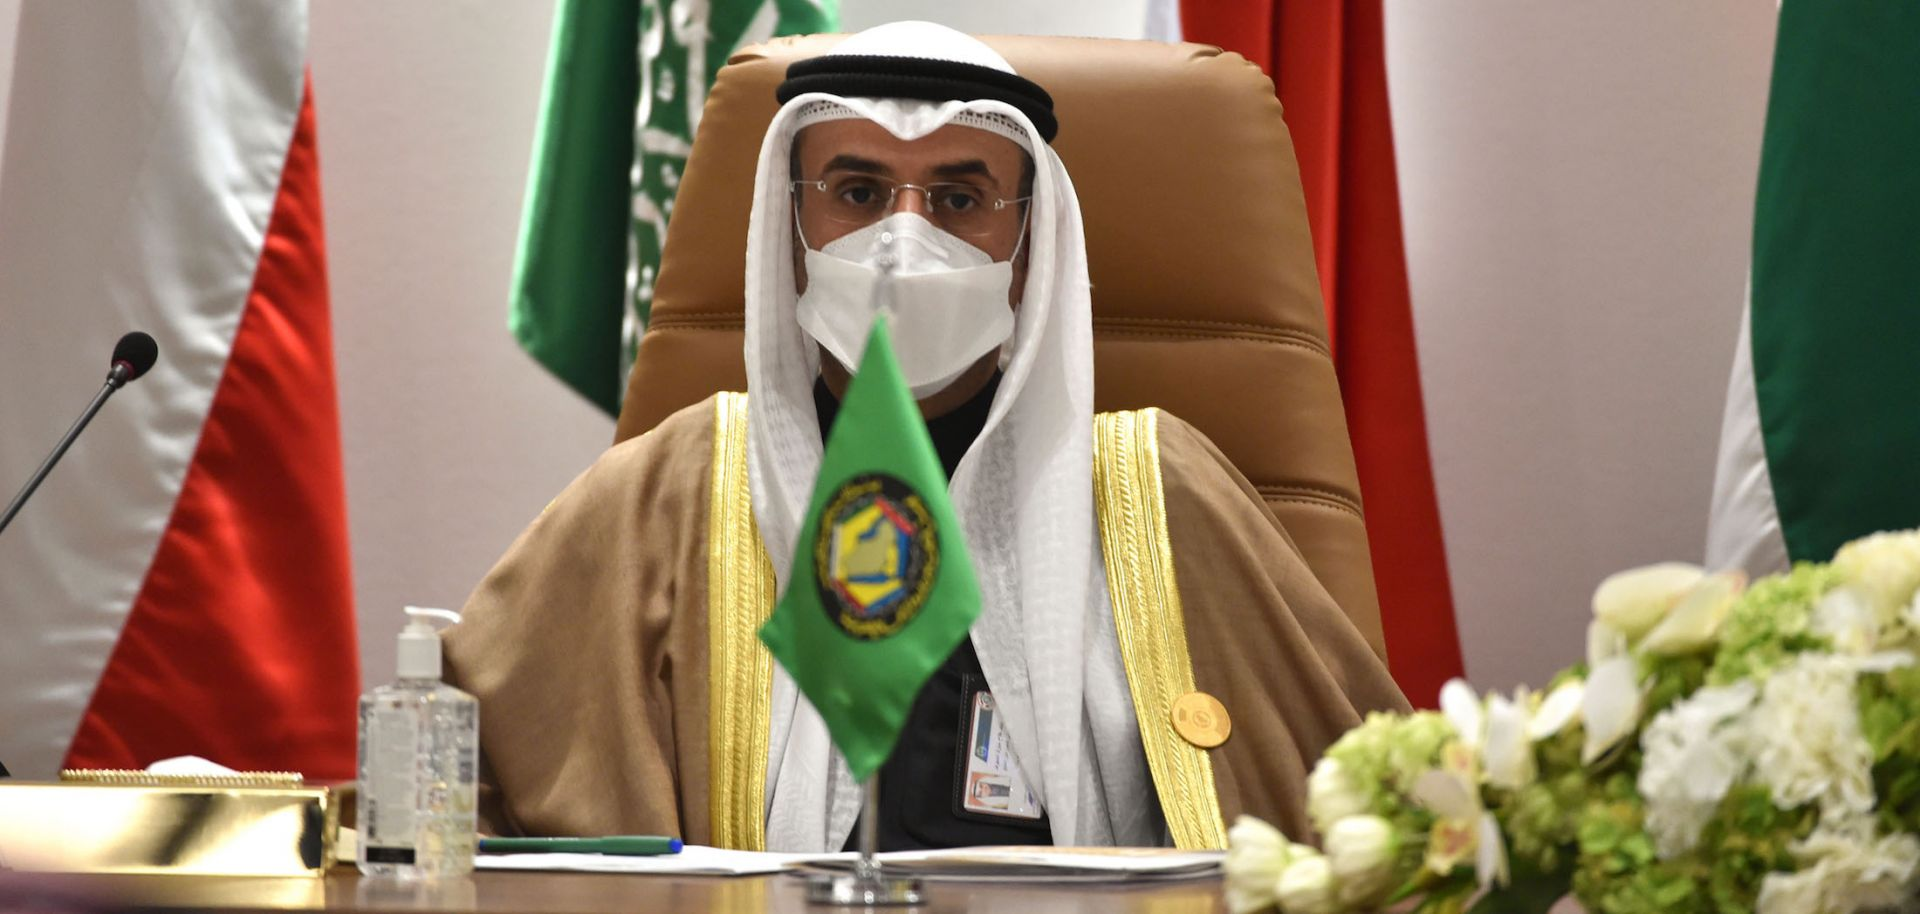 Secretary-General of the Gulf Cooperation Council (GCC) Nayef Falah Al-Hajraf holds a press conference at the end of the GCC's 41st summit in the city of al-Ula in northwestern Saudi Arabia on Jan. 5, 2021.